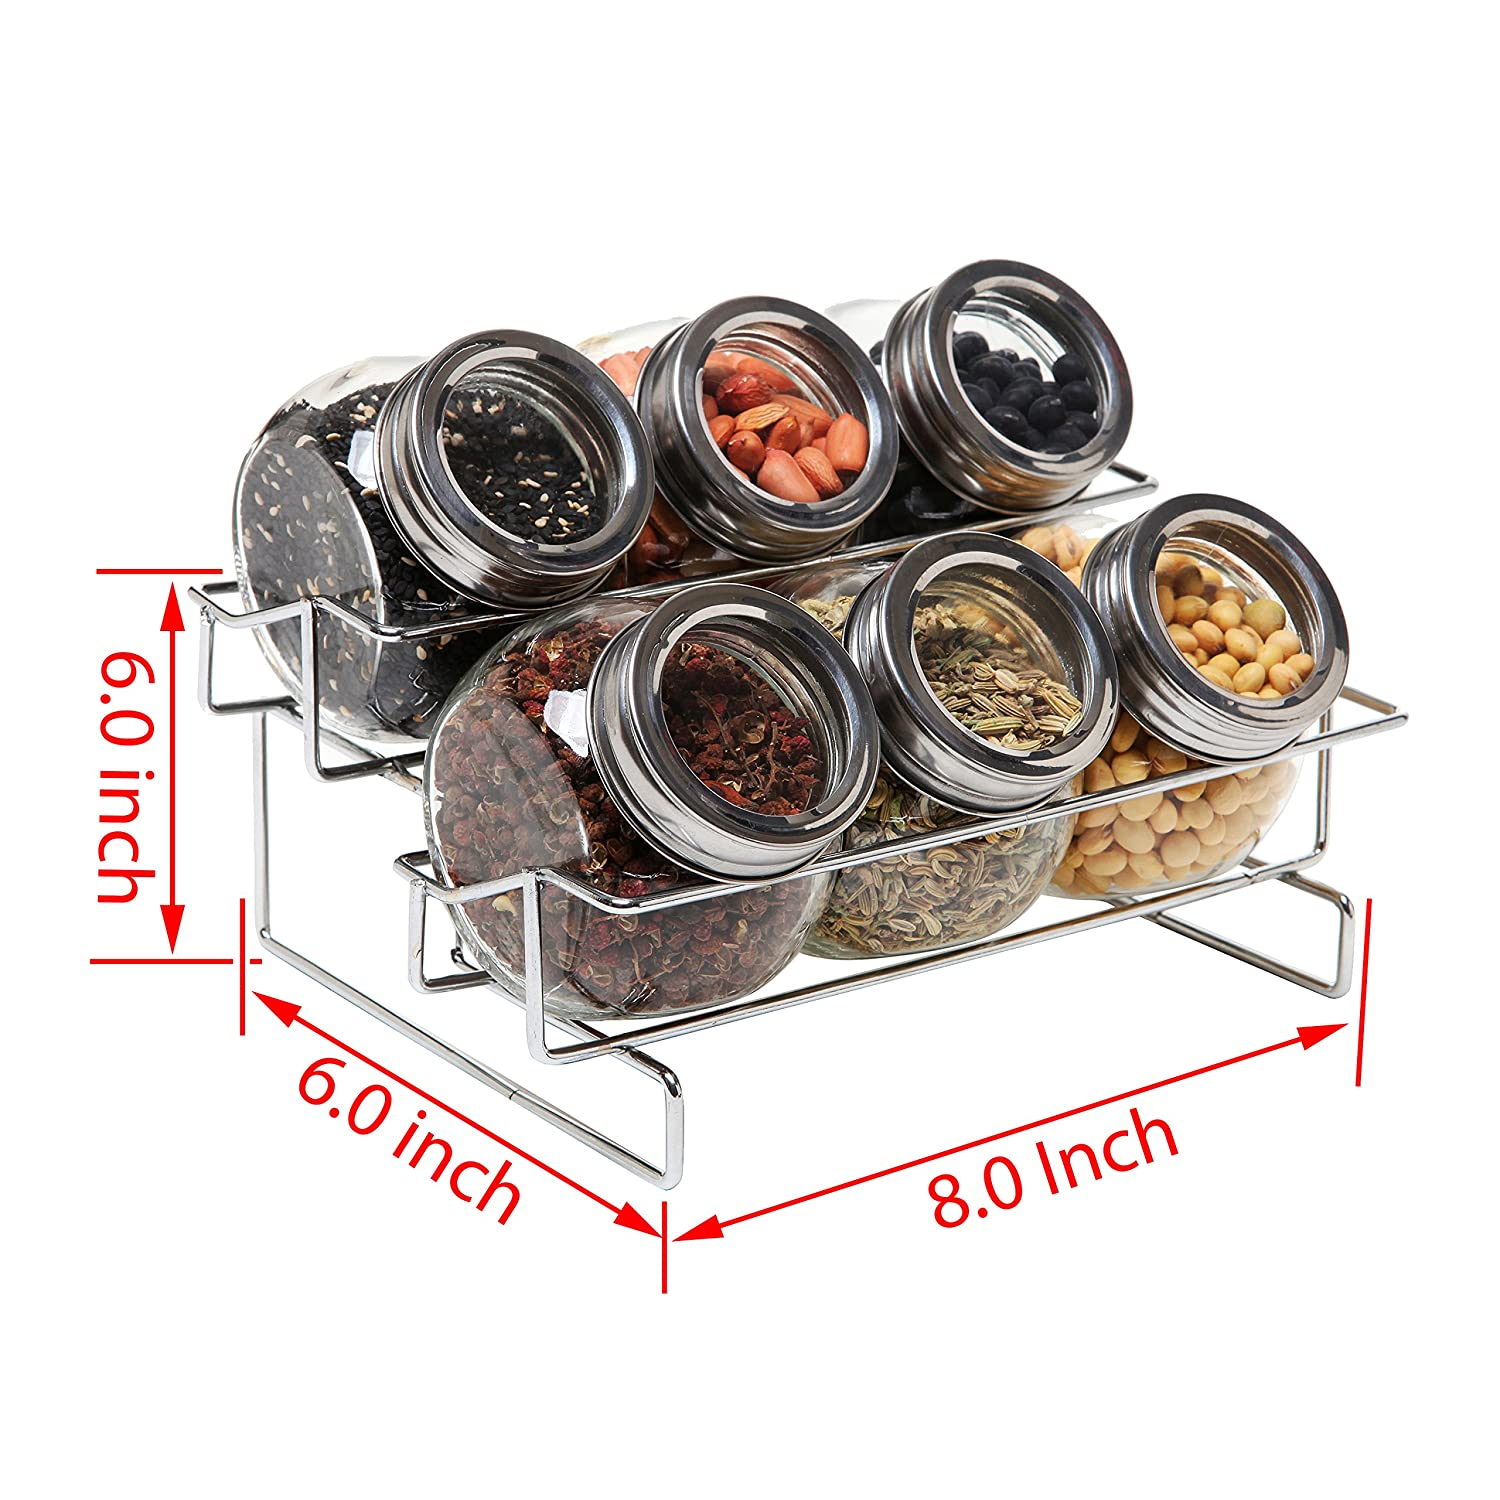 amazon com 6 jar metal and glass food spice kitchen storage amazon com 6 jar metal and glass food spice kitchen storage container rack mygift kitchen dining